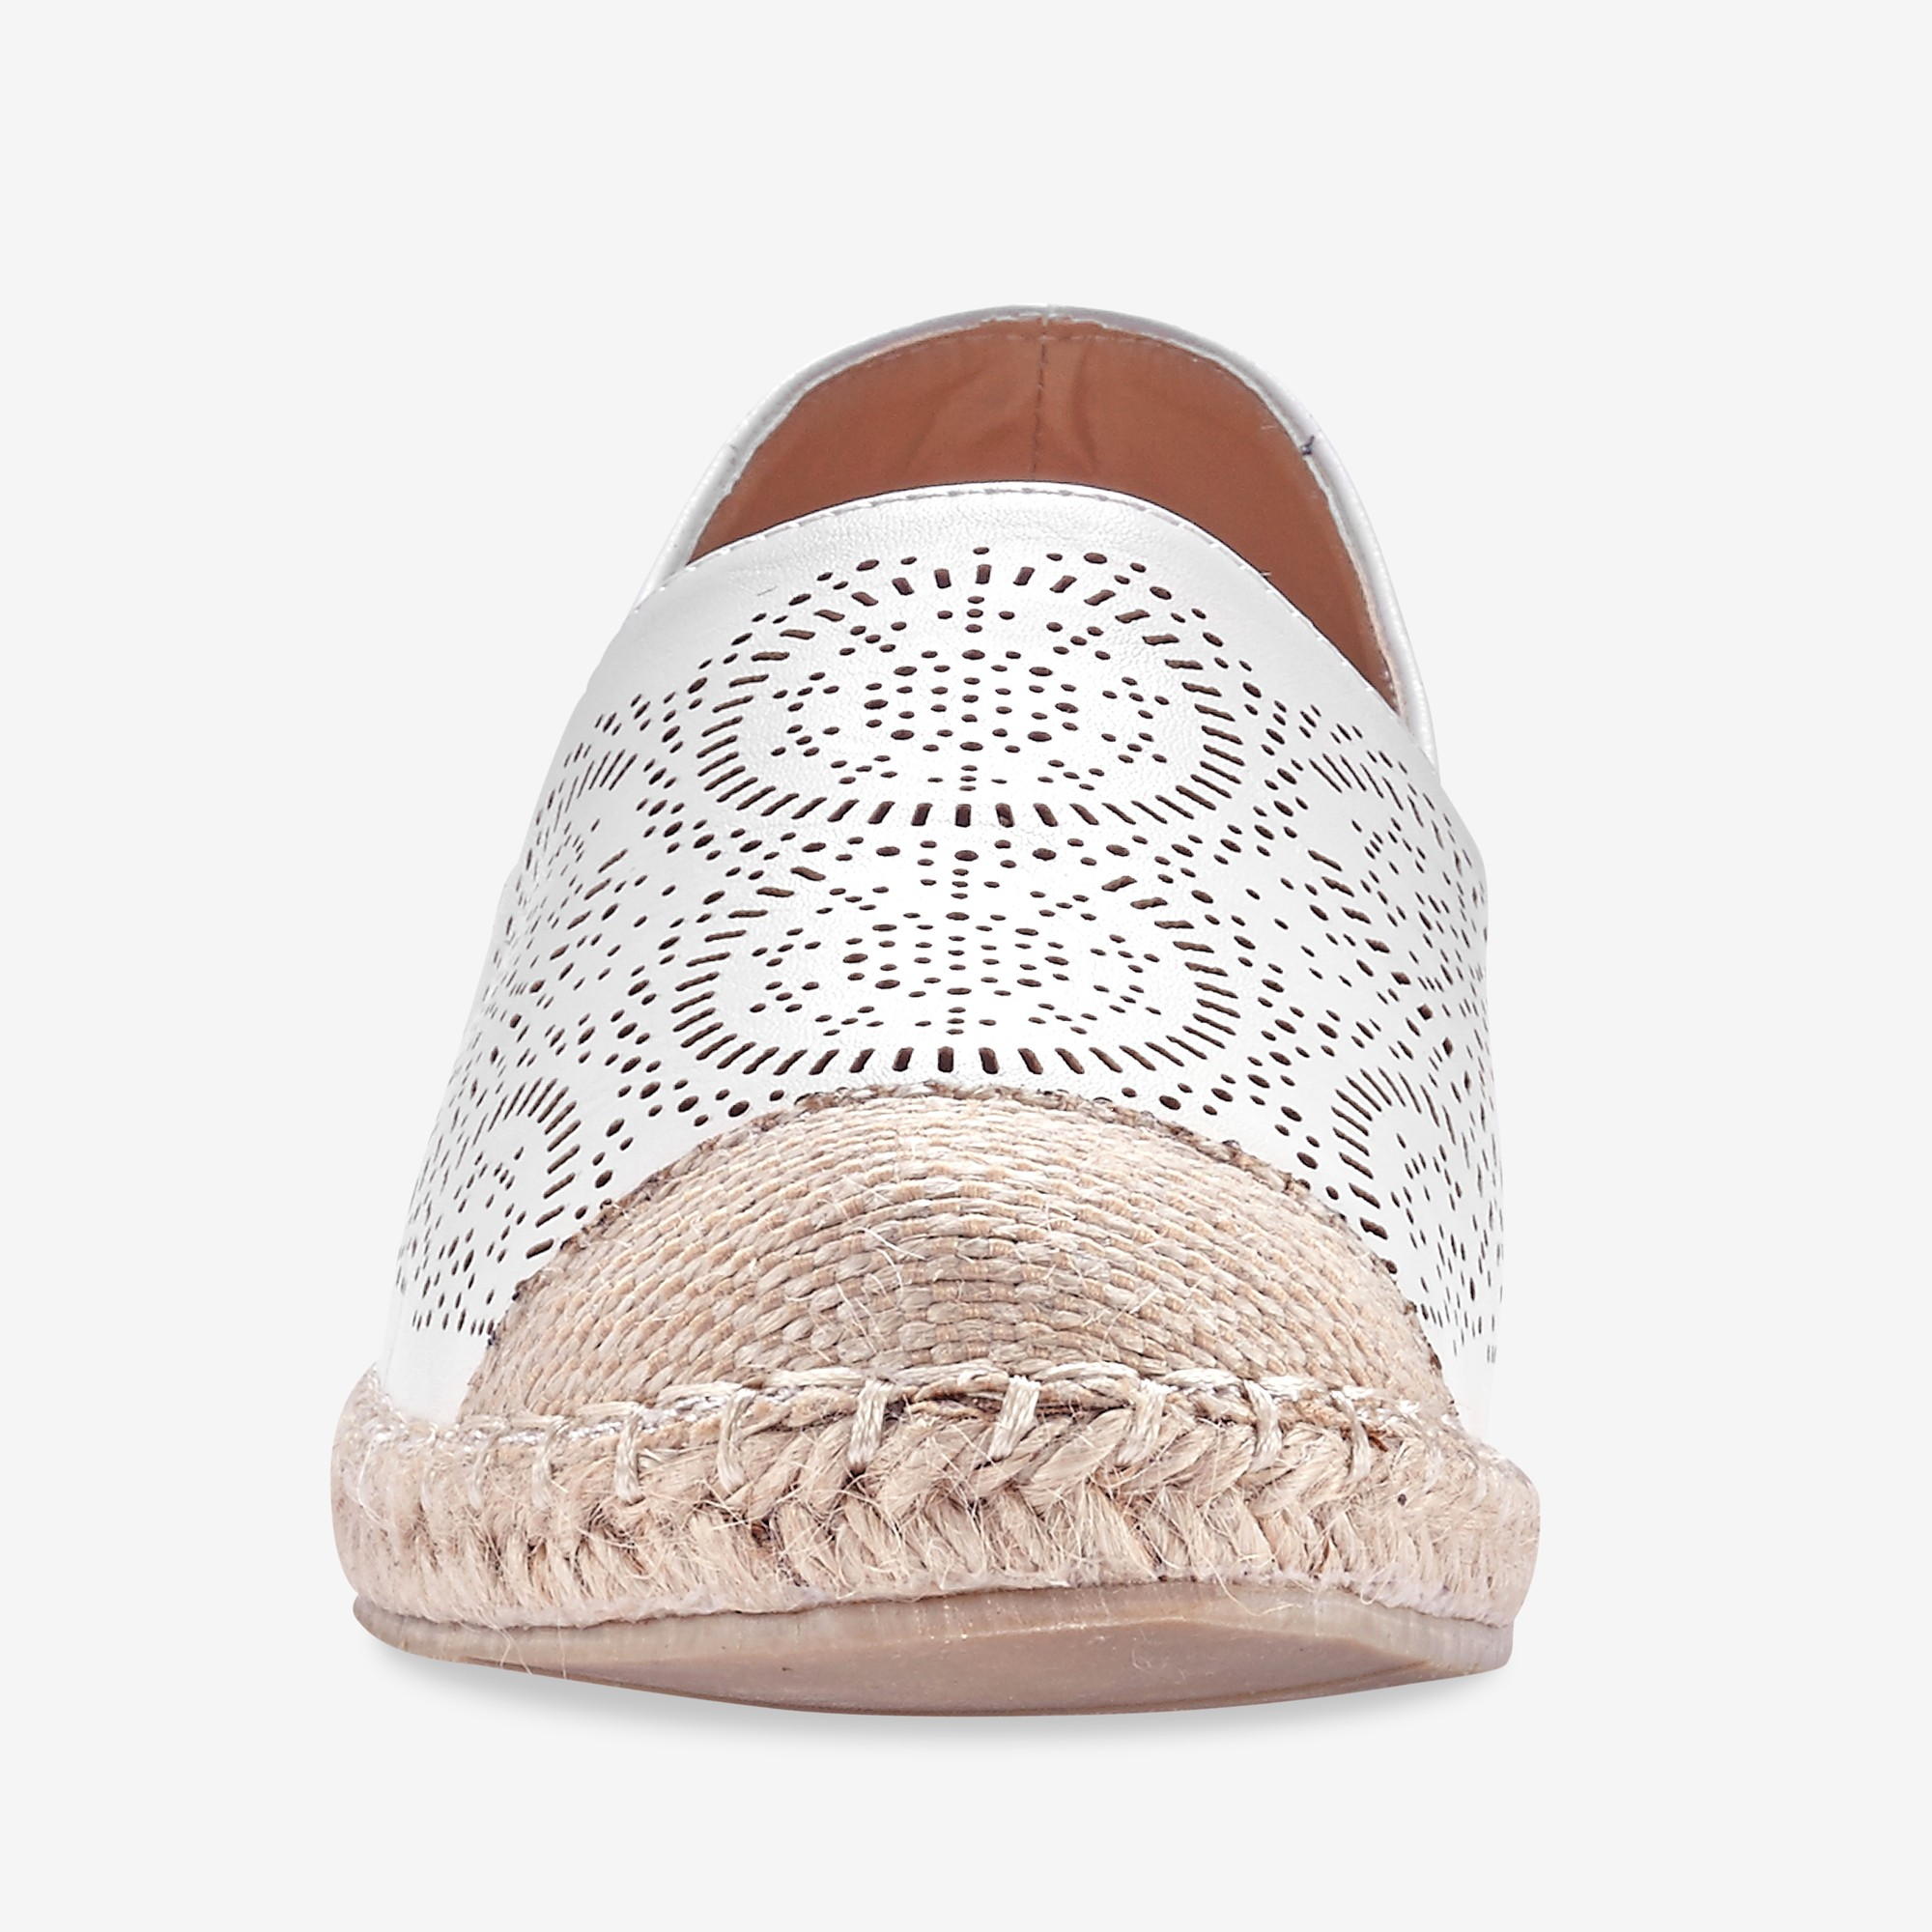 Perforées Blancheporte Blanches Blanches Perforées Perforées Espadrilles Blanches Espadrilles Blancheporte Blancheporte vZxq4Z